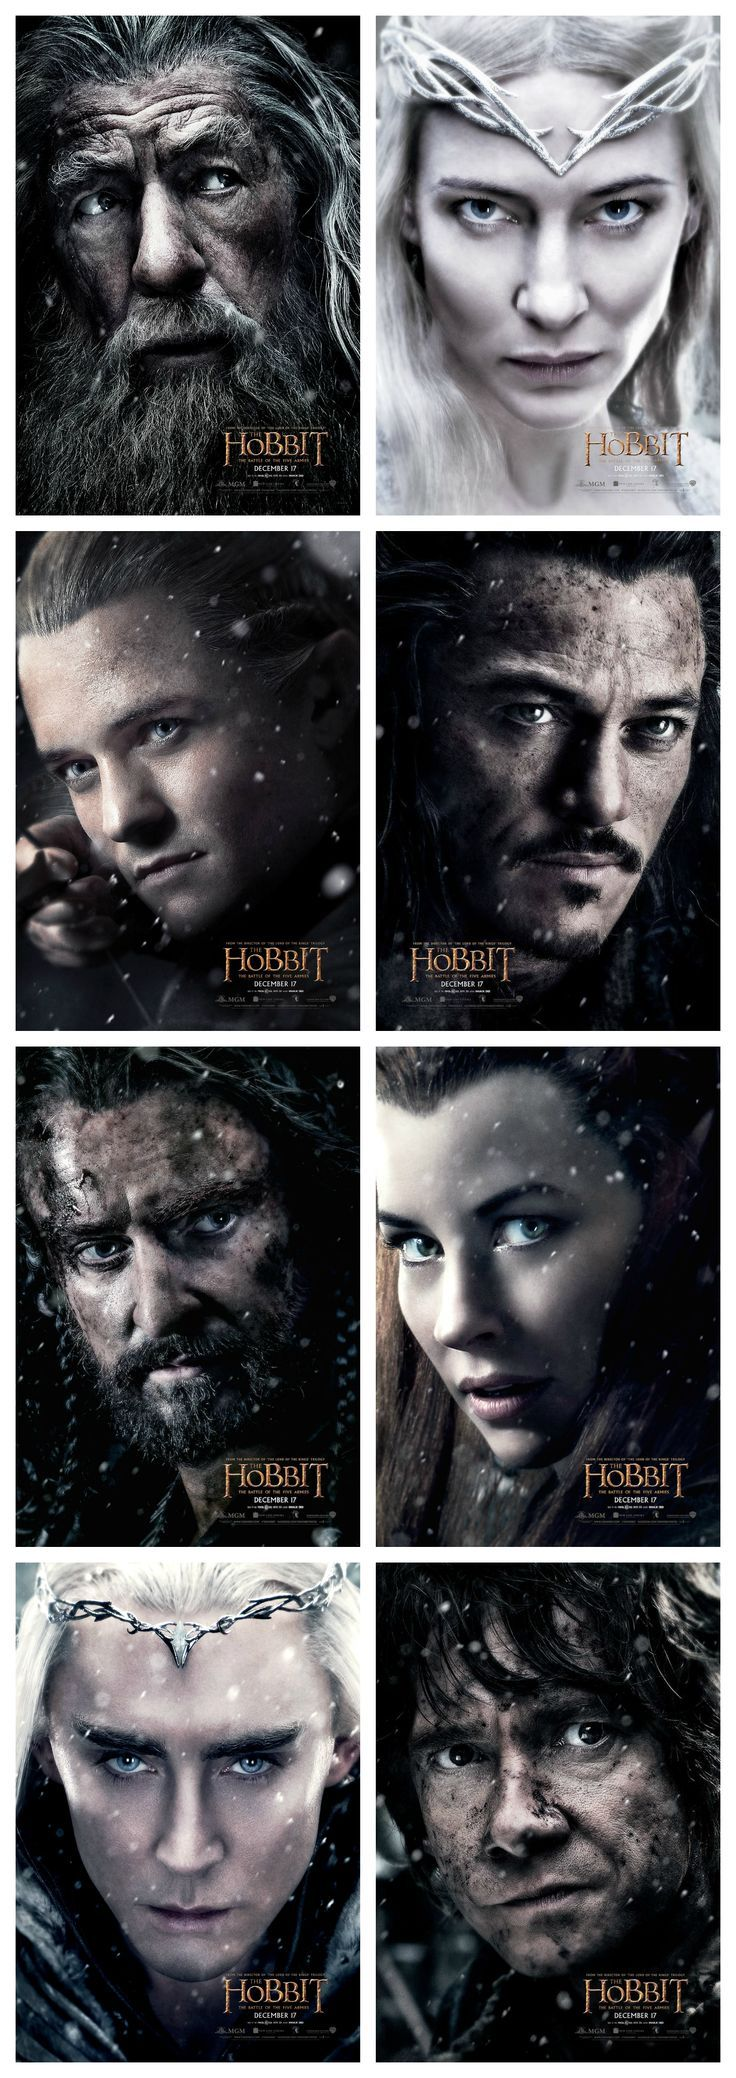 The complete set of The Hobbit: the Battle of the Five Armies character posters.